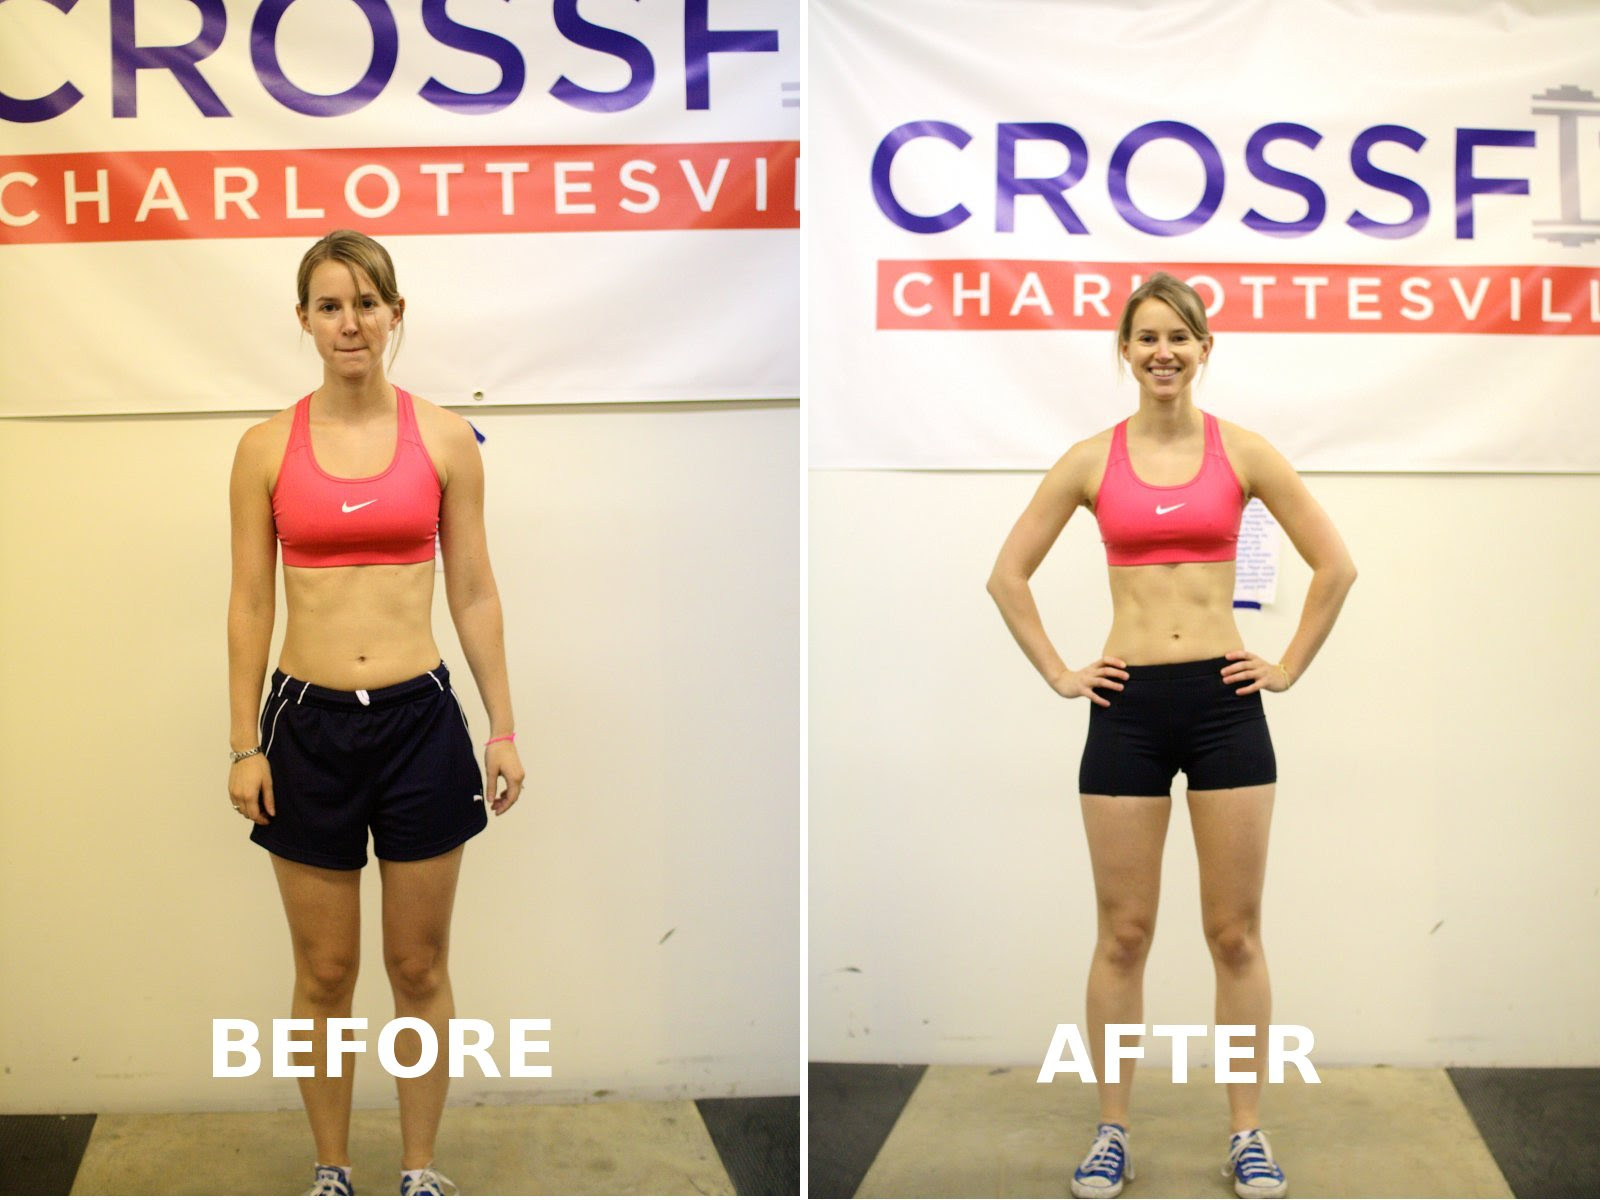 Lose weight crossfit robert k hall blog can i lose weight doing crossfit ccuart Gallery